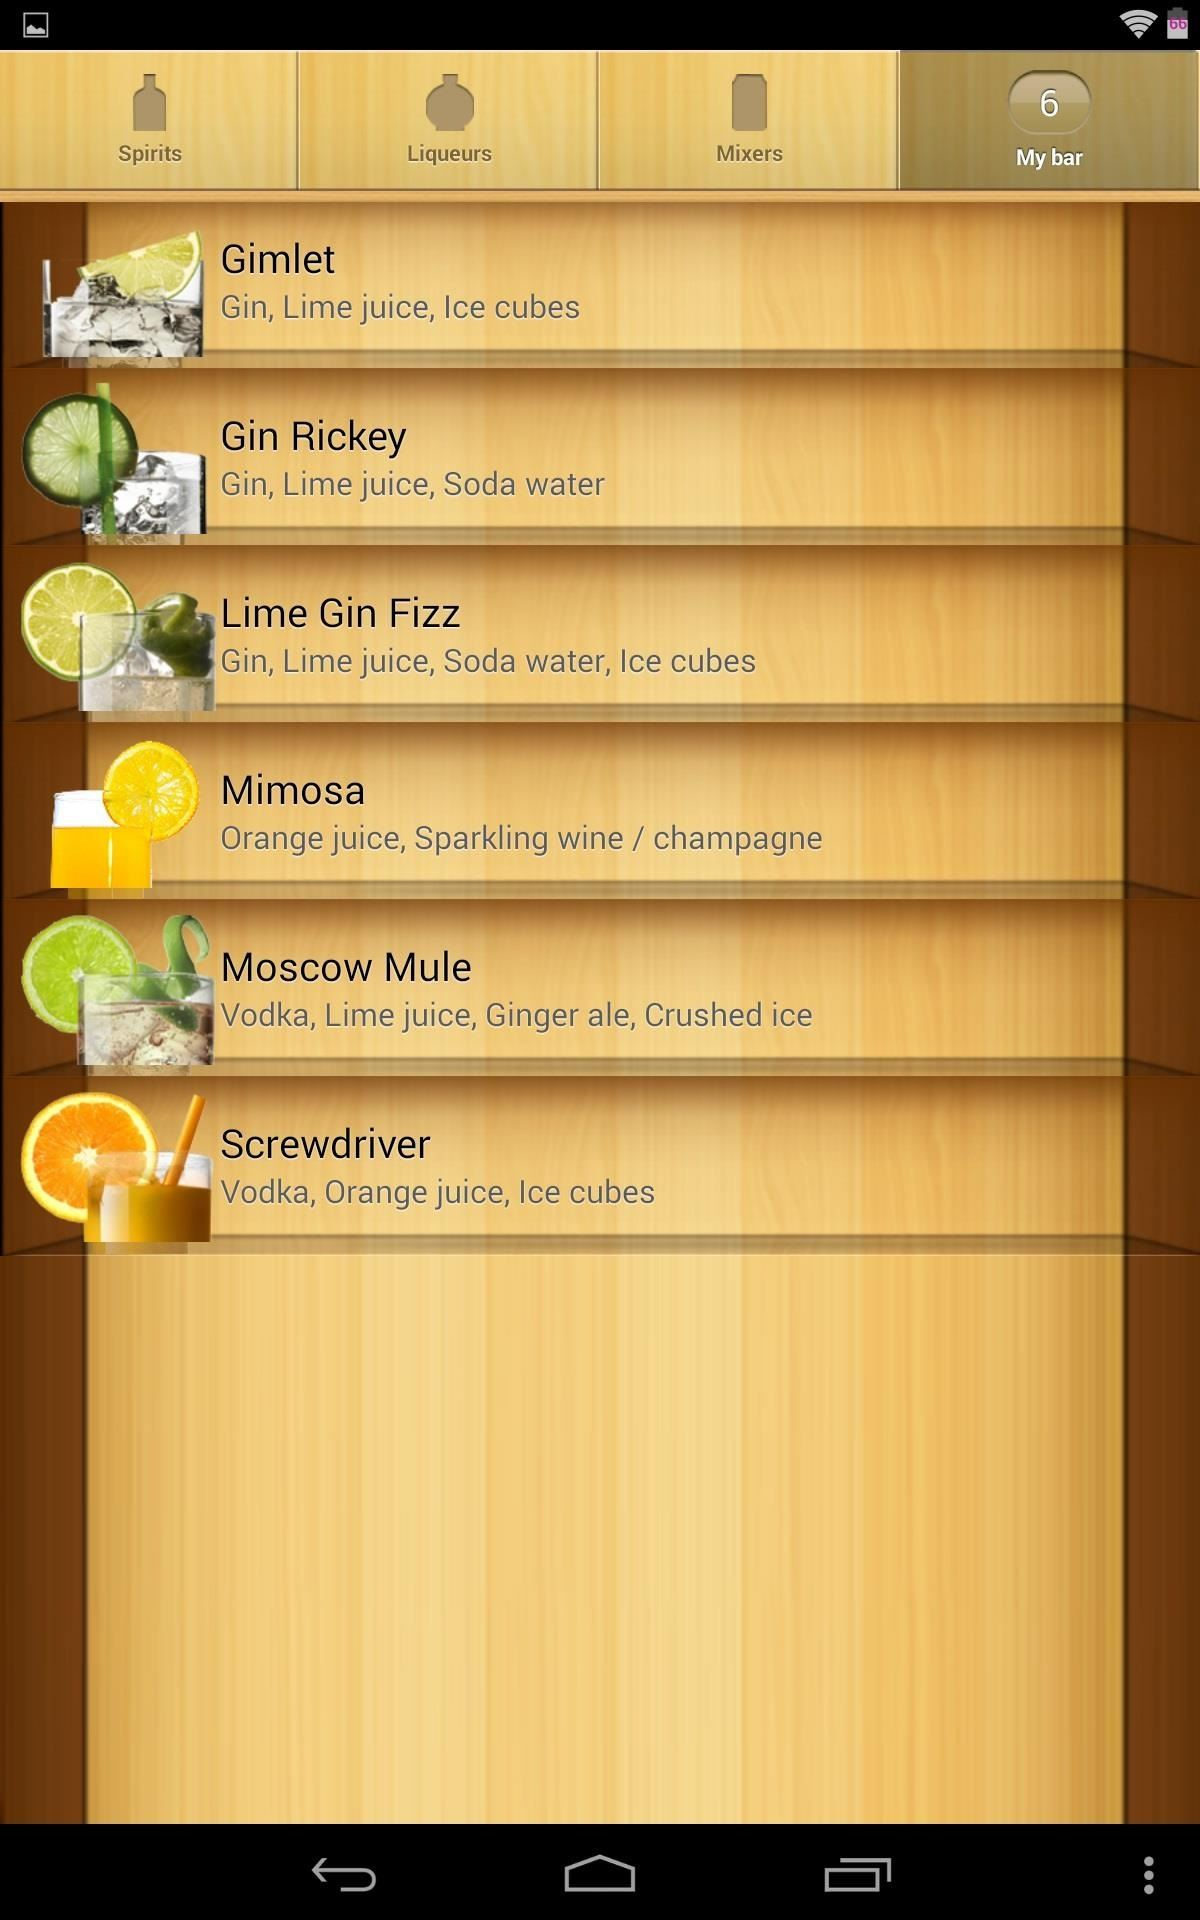 How to Turn Your Nexus 7 into a Personal Mixologist to Class Up Your Home Bar